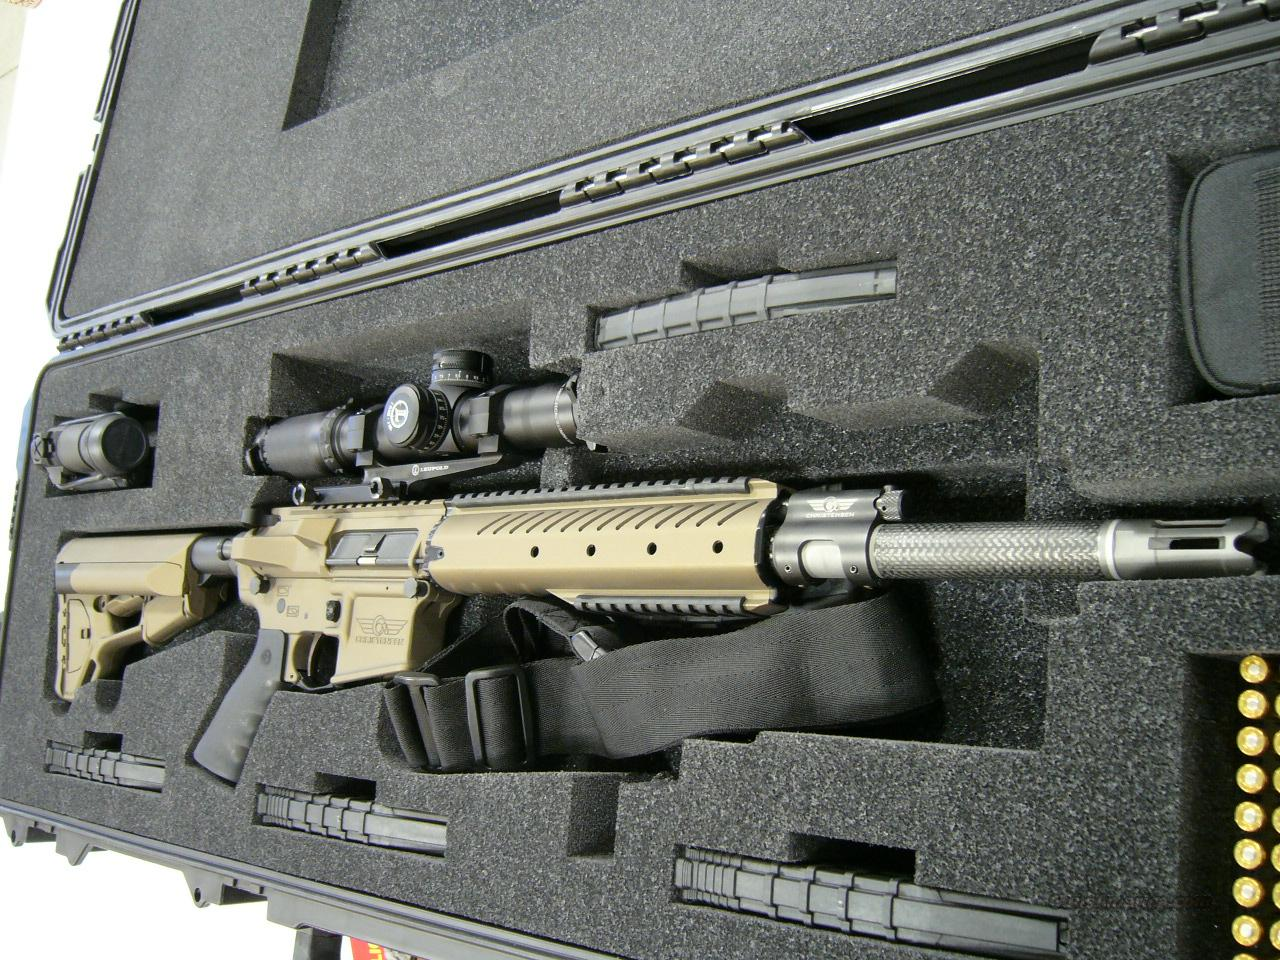 CHRISTENSEN ARMS CUSTOM ORDER W/ LEUPOLD MARK 8 1-8X MOUNTED WITH LEUPOLD IMS MARK 8 BASE IN STOCK   Guns > Rifles > Tactical/Sniper Rifles